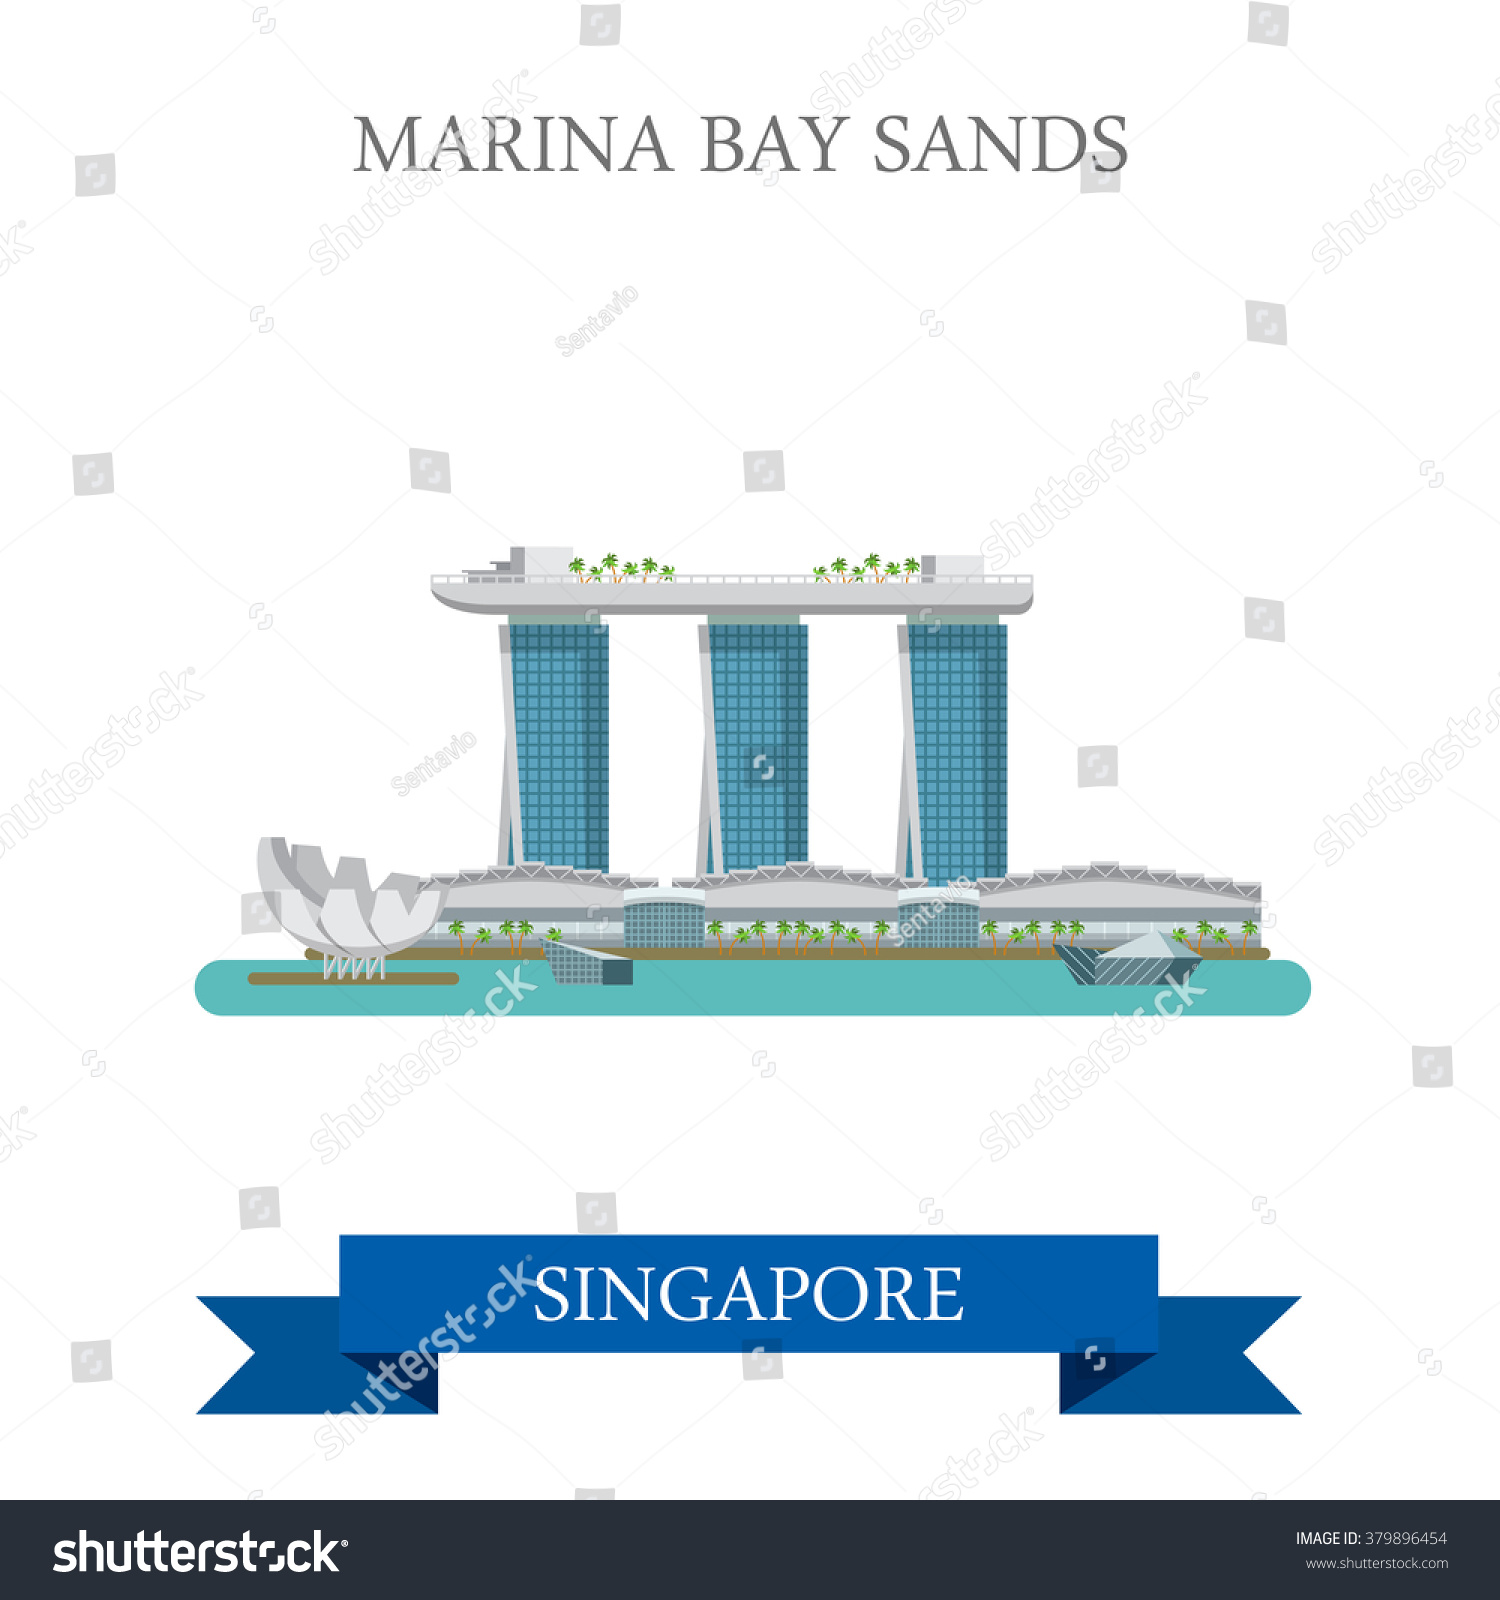 DIRECTIONS TO MARINA BAY SANDS